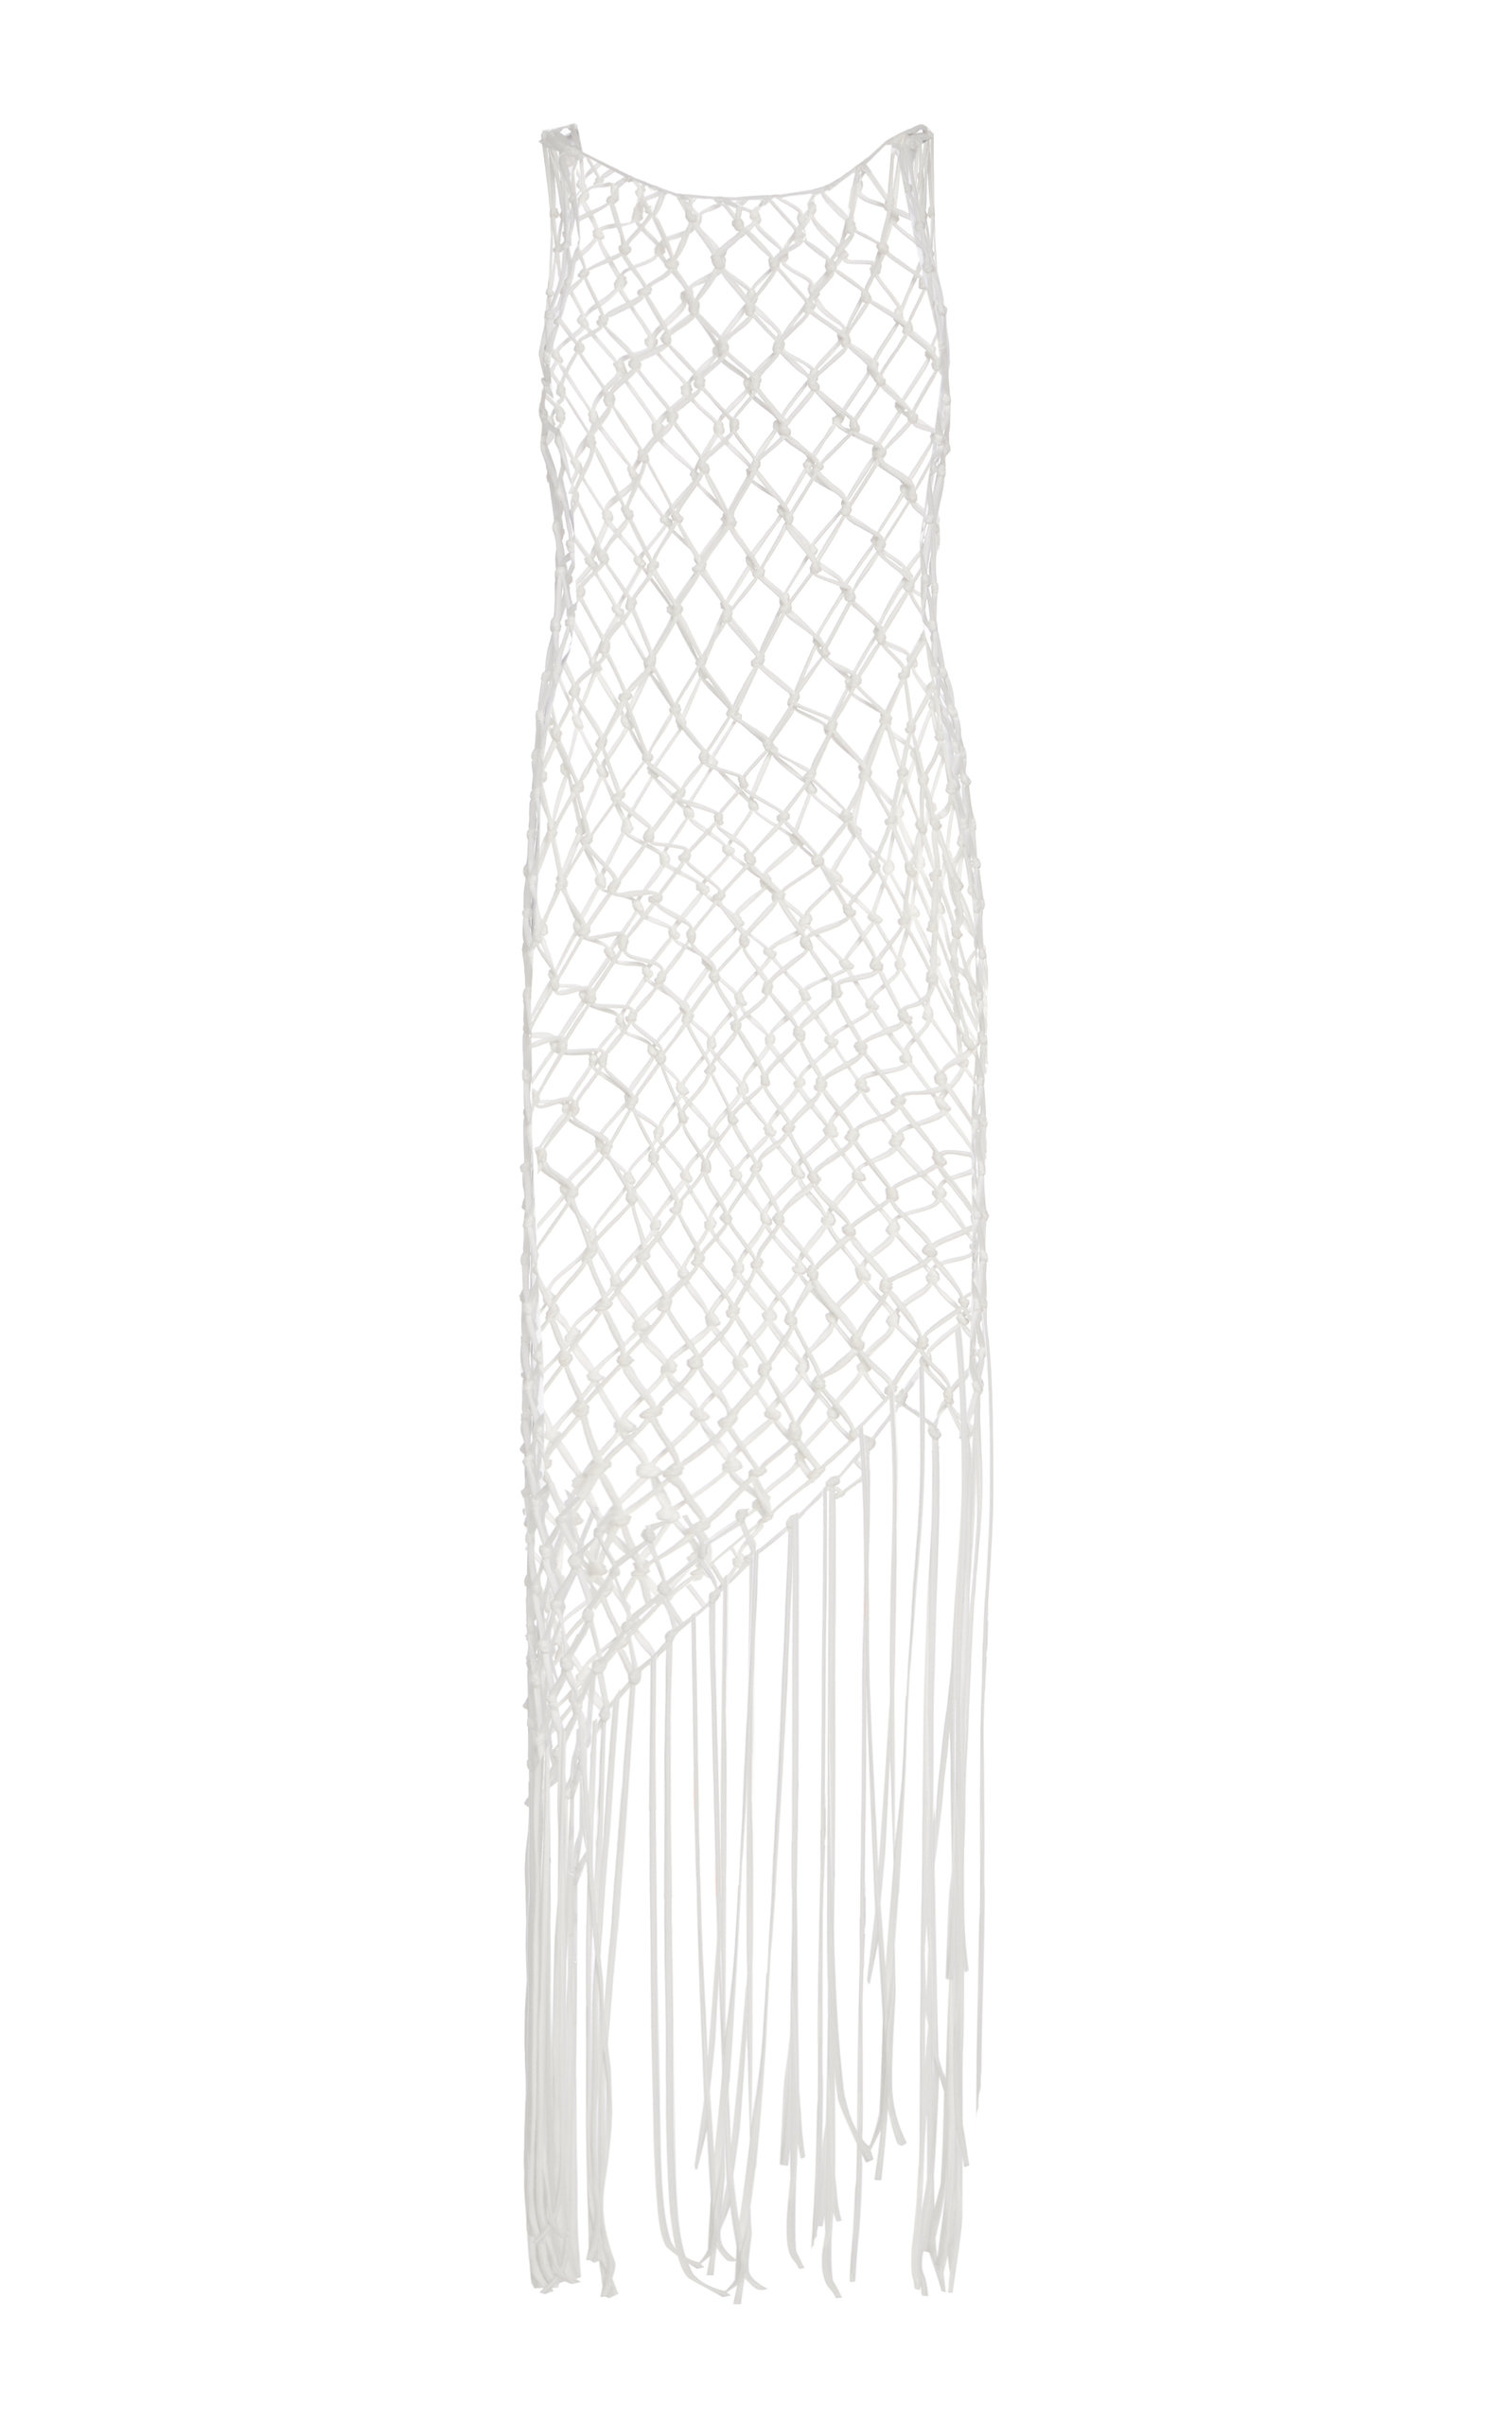 Buy Off-White c/o Virgil Abloh Fringed Cotton Fishnet Dress online, shop Off-White c/o Virgil Abloh at the best price